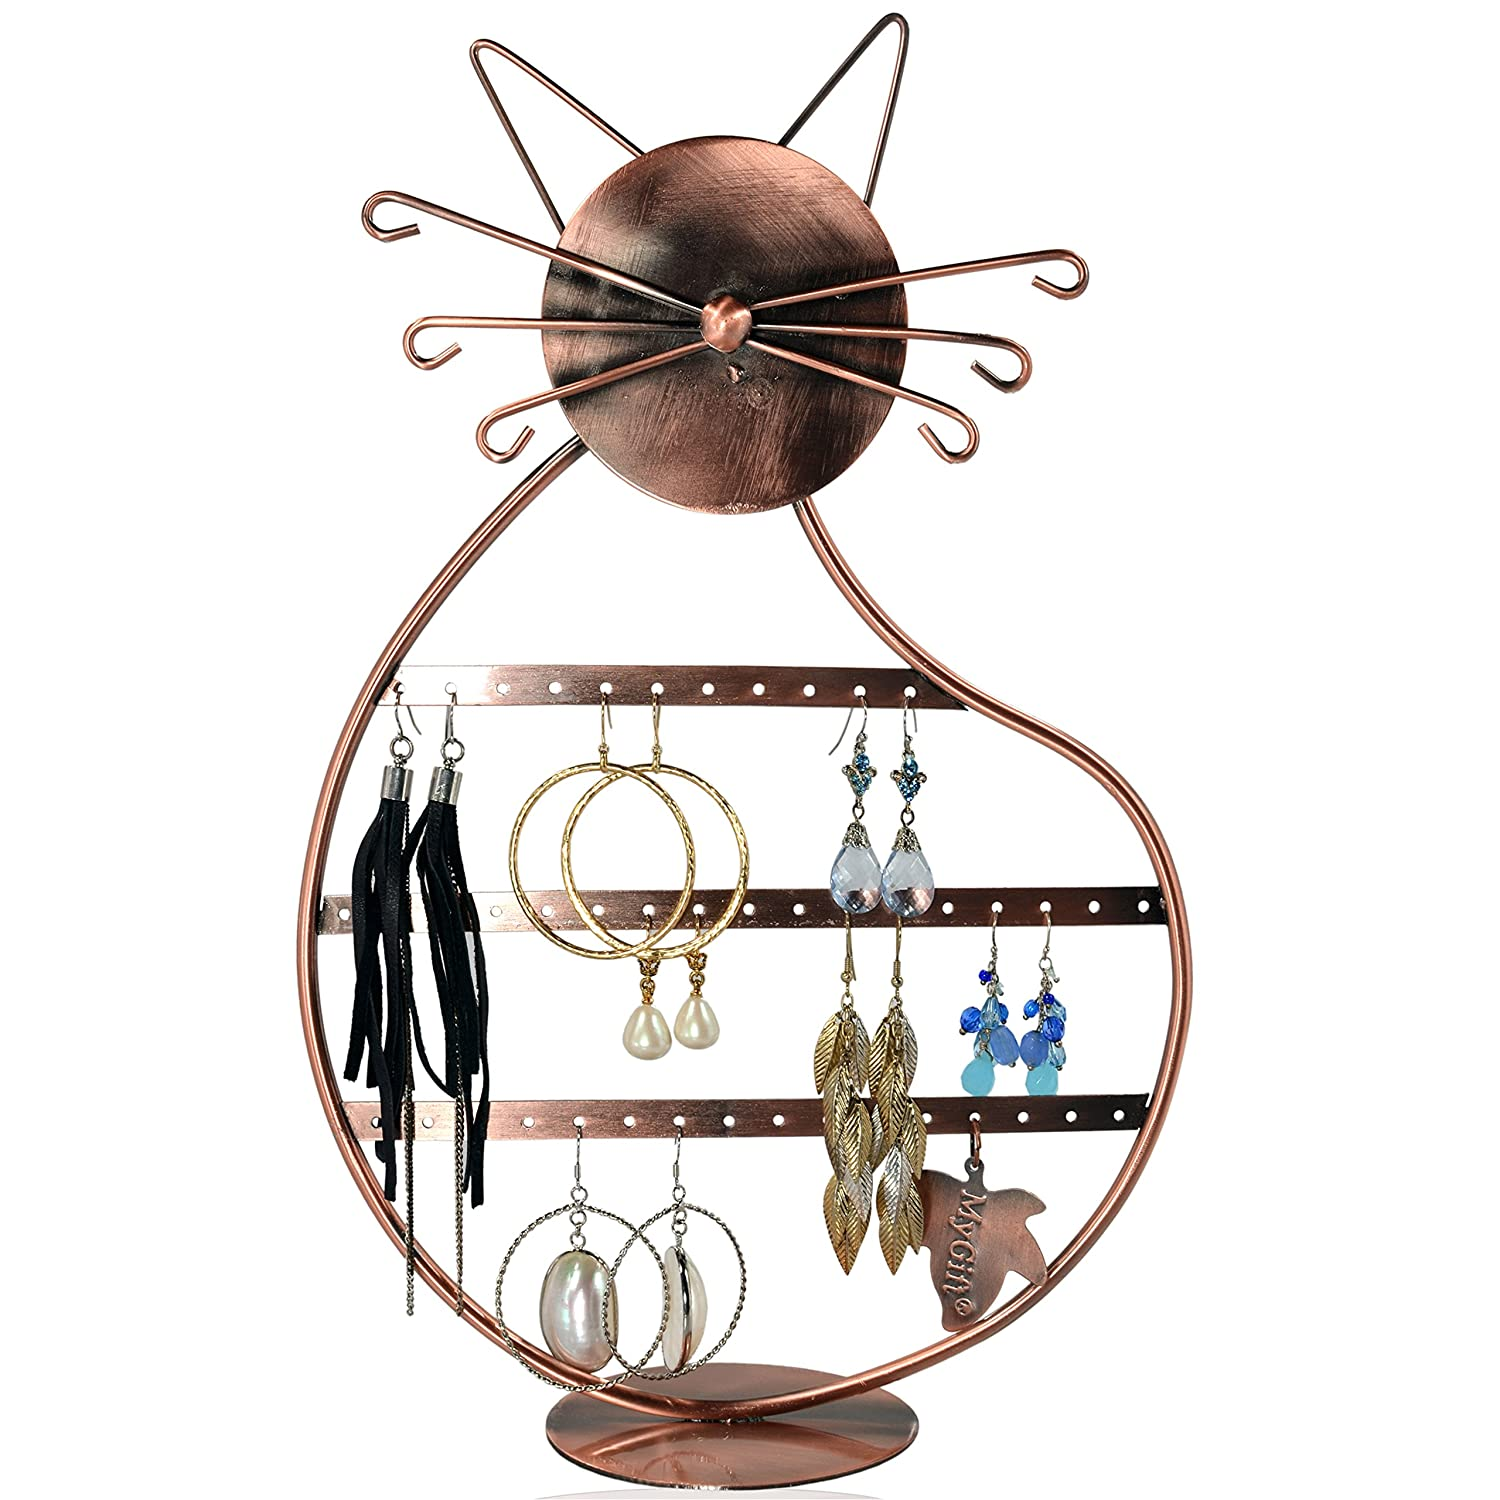 Blingmate Cat Shape Copper Color Wire Earring Holder / Earring Tree / Earring Oraganizer / Earring Stand / Earring Display Bejeweled Display SHOMHNK004